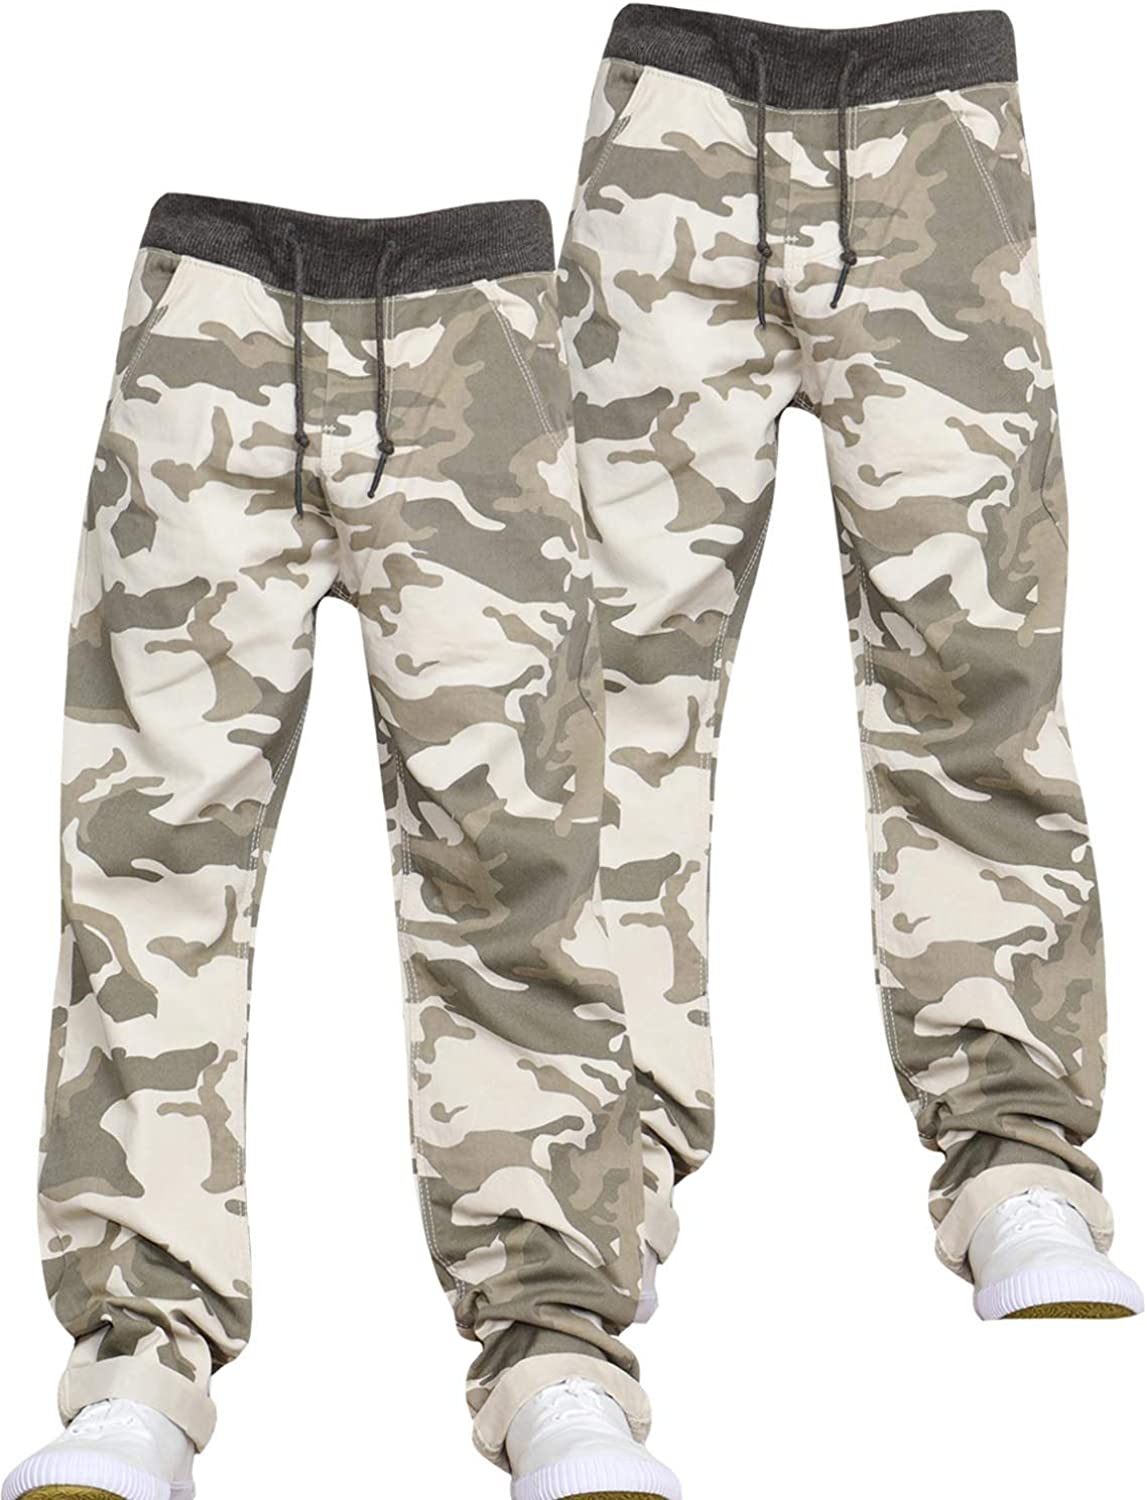 New Boys Multipack Kids Camo Designer Pull-On Elasticated Waist Jogger Camoflauge Jeans Pants by JEANBASE